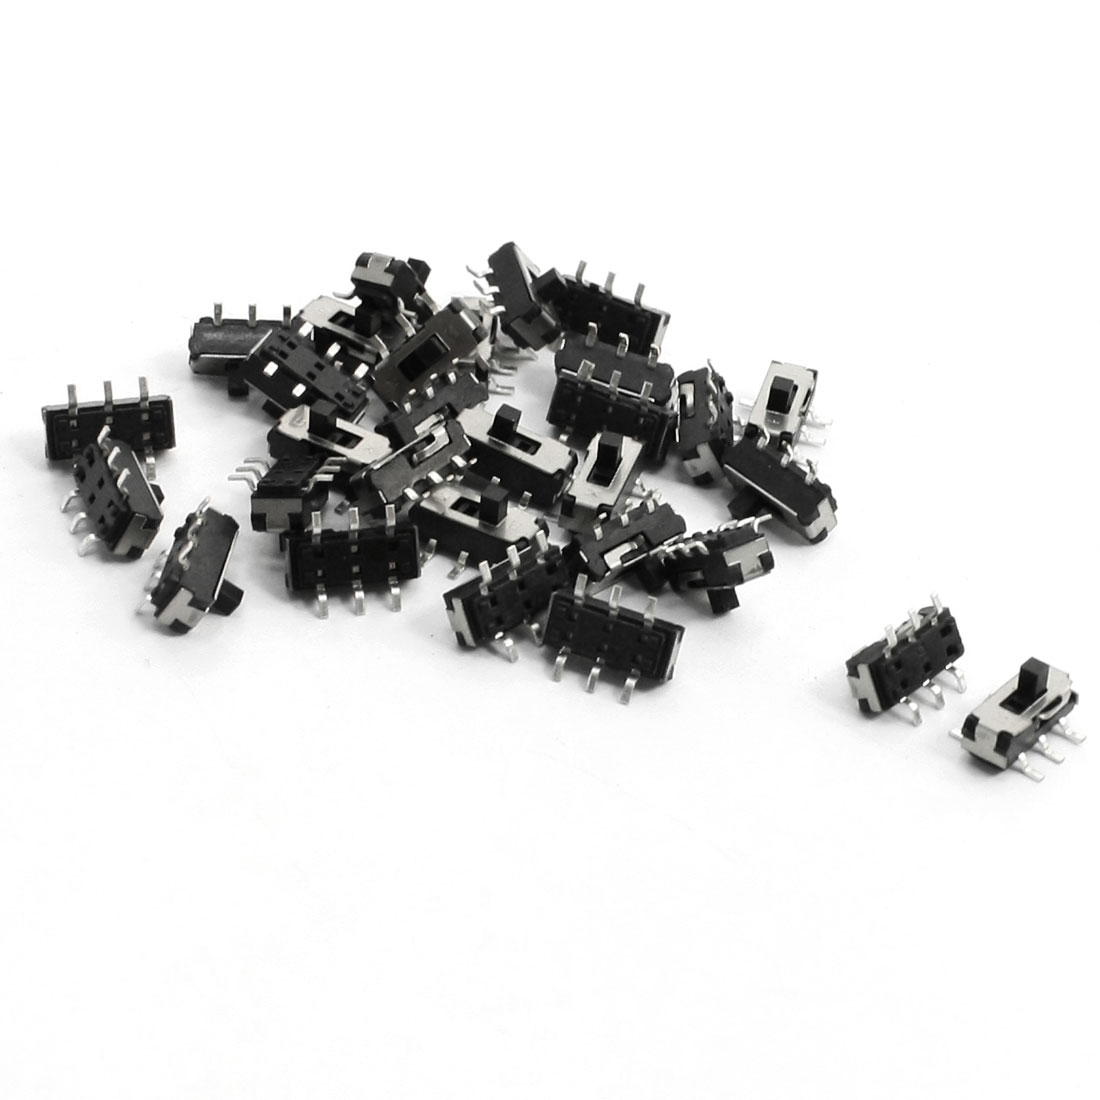 30pcs 9x3.6x5.2mm SMT SMD Self Locking Micro Slide Tact Tactile Switch